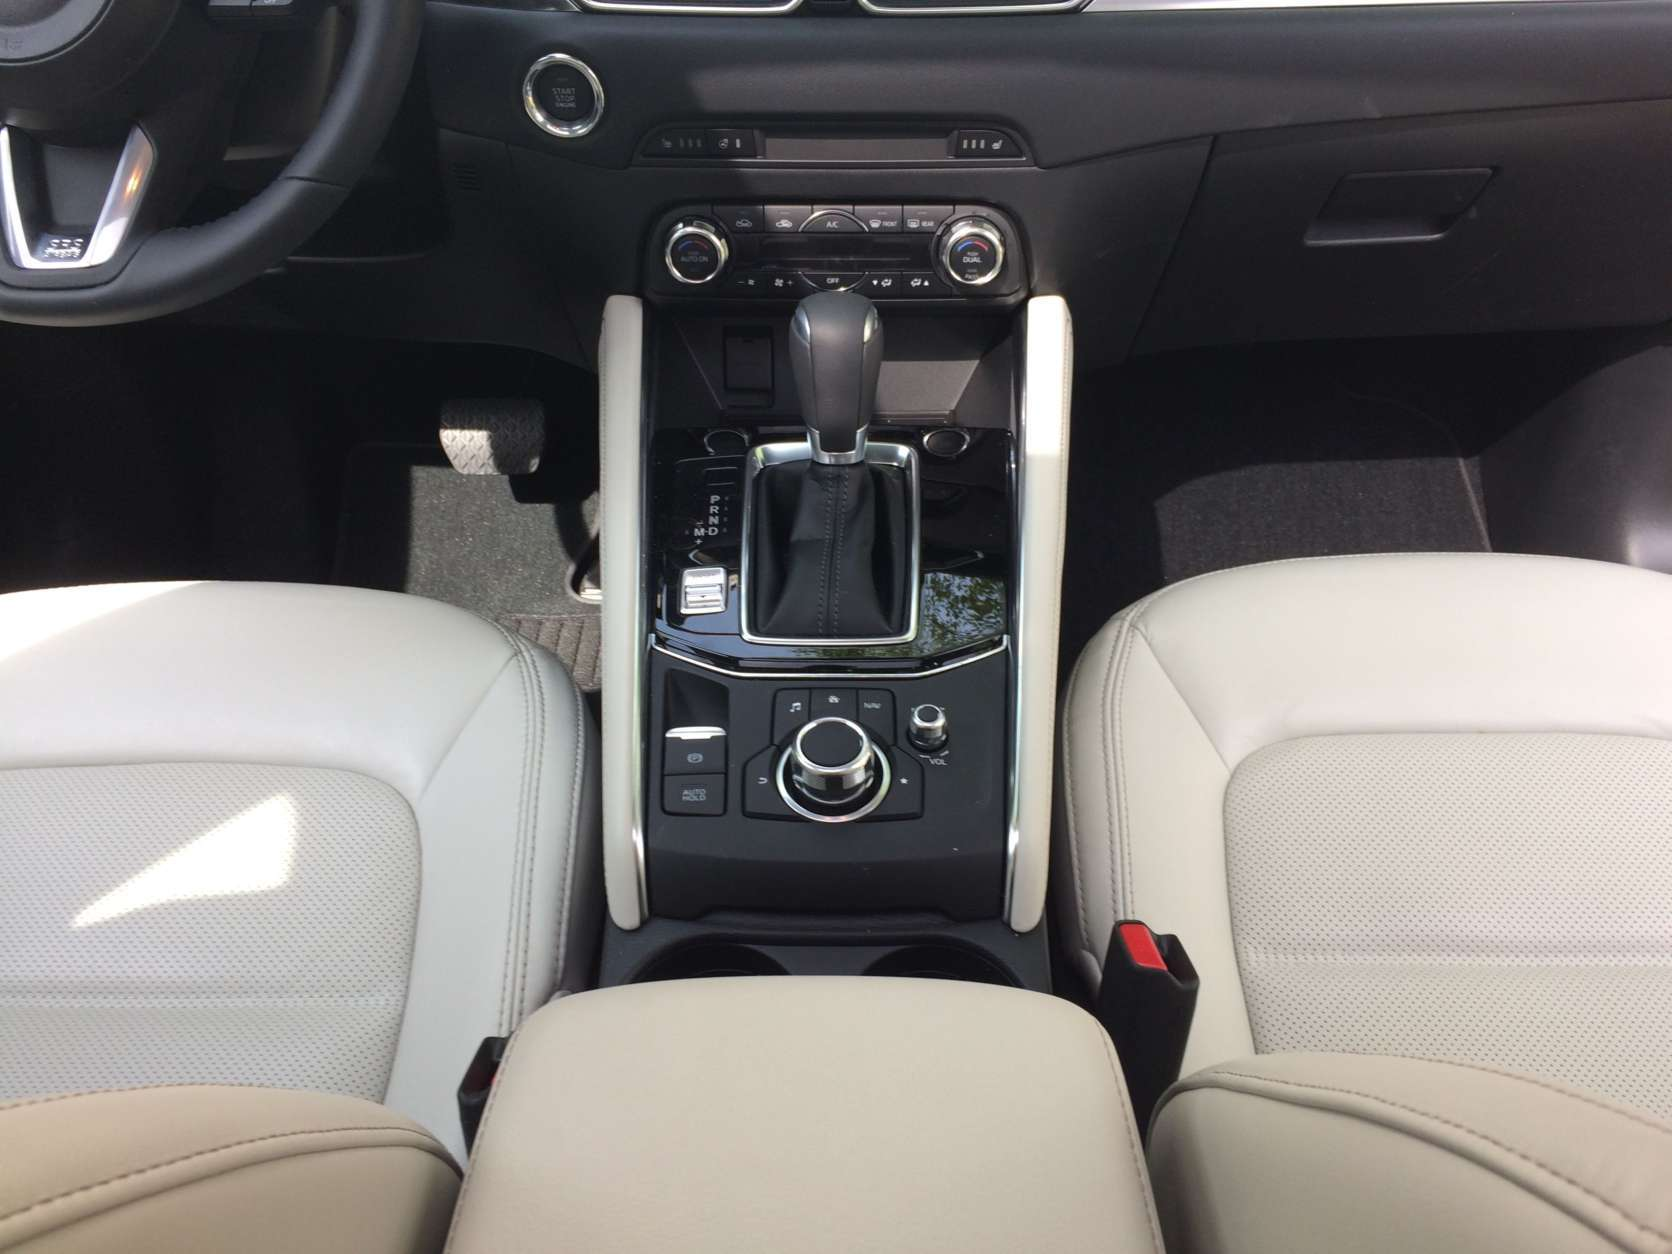 Layouts for radio and NAV controls have changed and are now more luxury-car like with a wheel in the middle of the console to control most functions. Even the volume and radio tuning is done behind the shifter. (WTOP/Mike Parris)